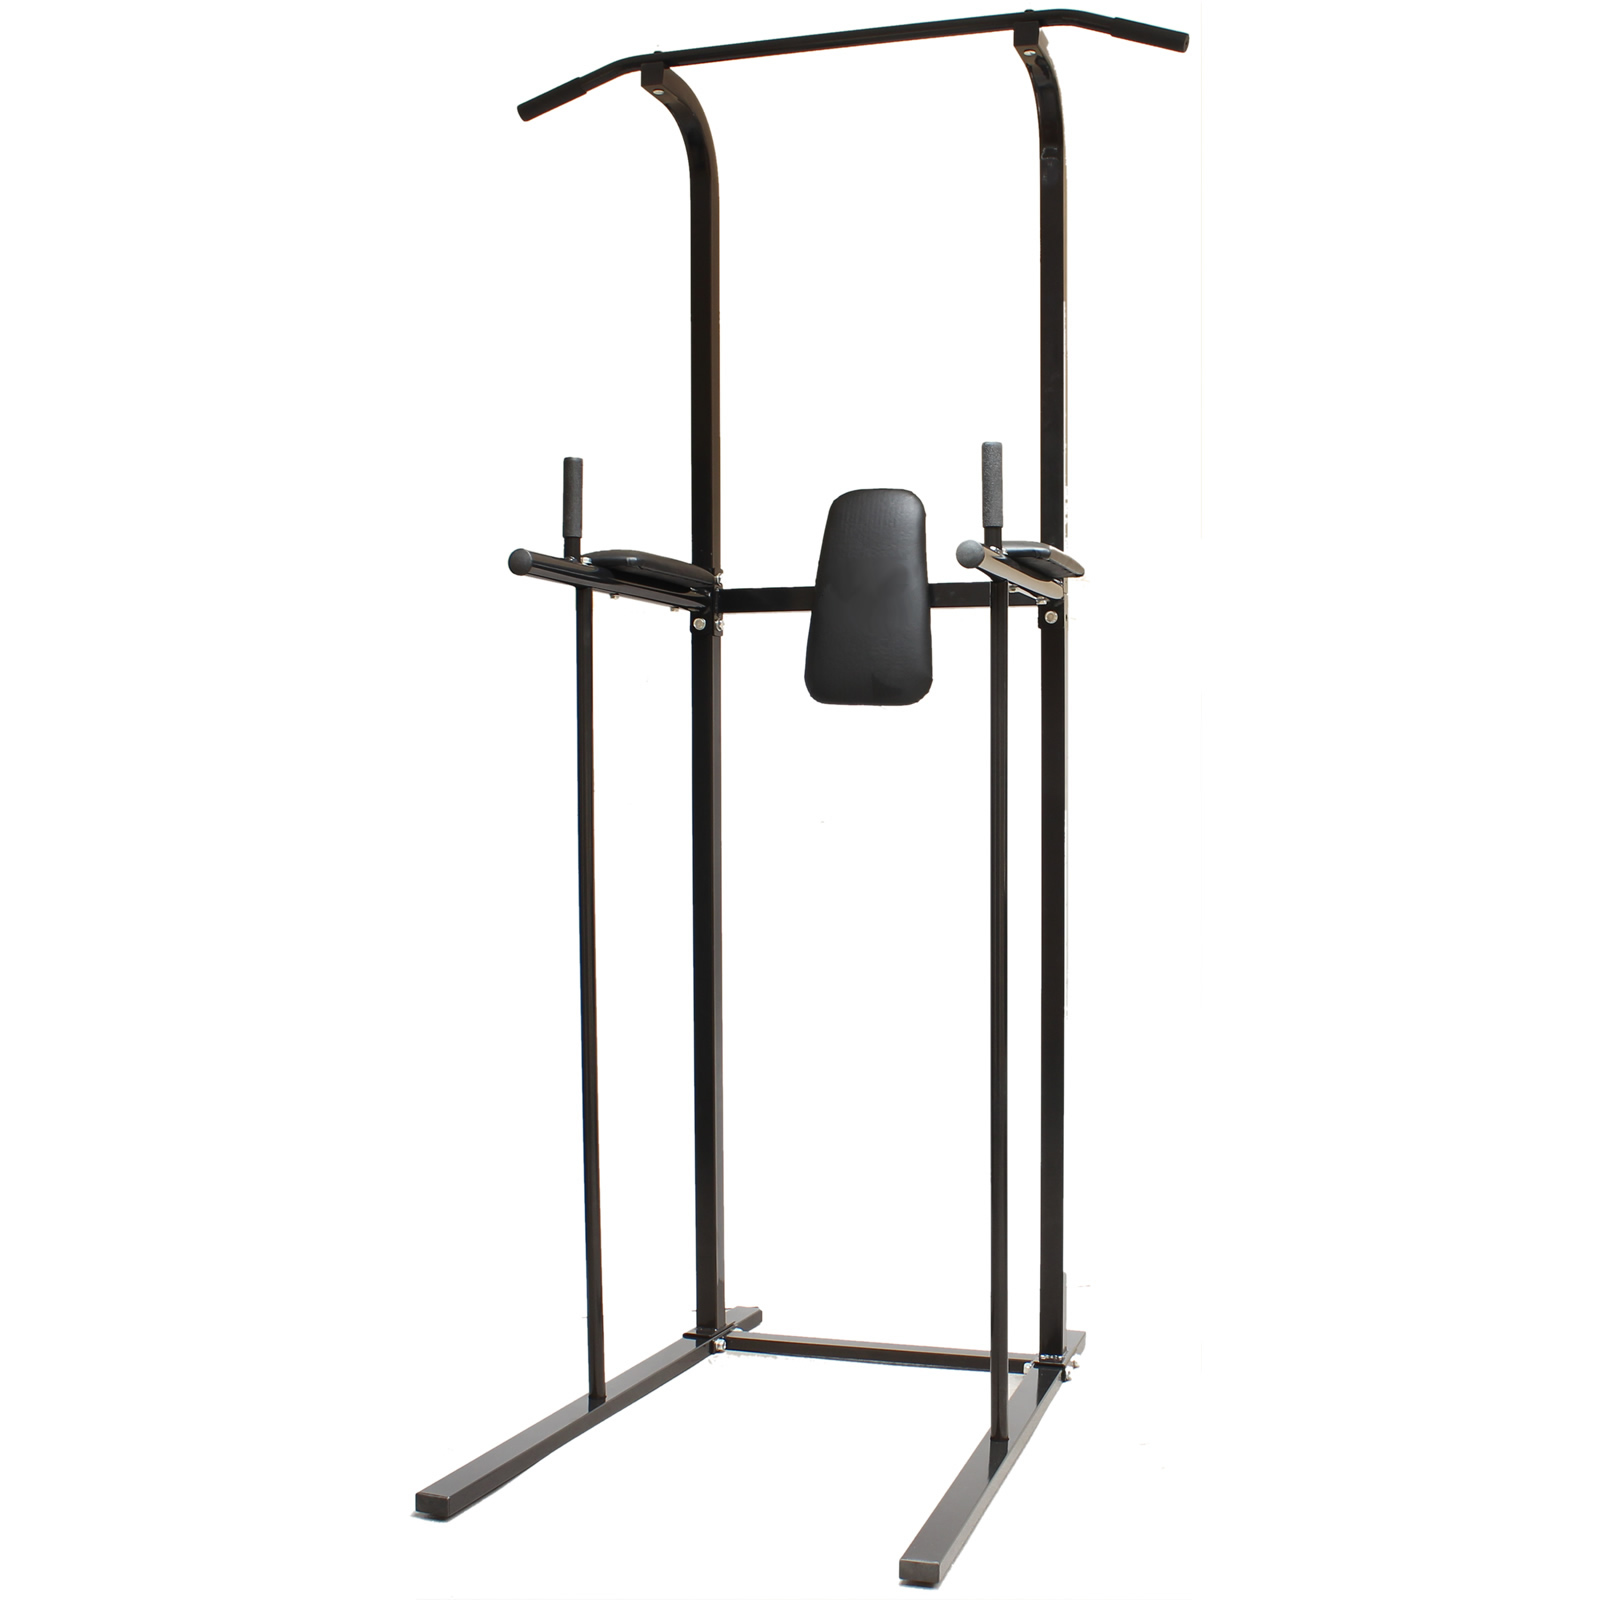 black home gym power tower dip station pull chin up bar. Black Bedroom Furniture Sets. Home Design Ideas